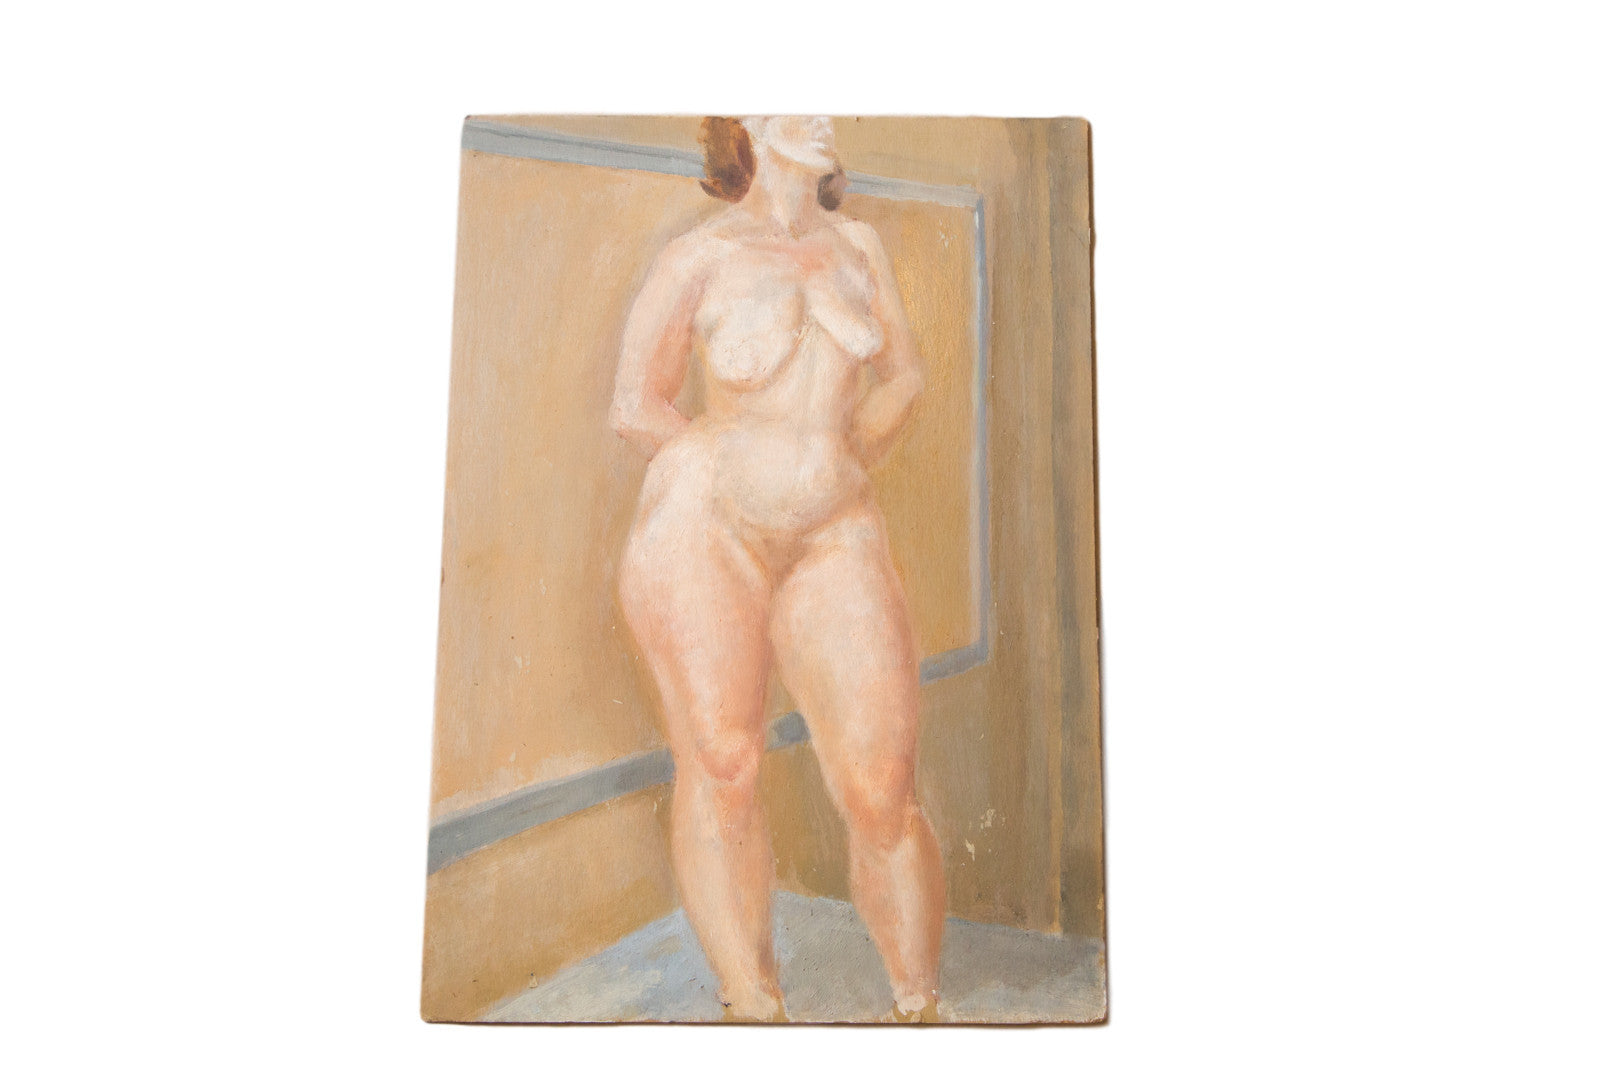 Previous Image Next Vintage Full Figure Nude Painting